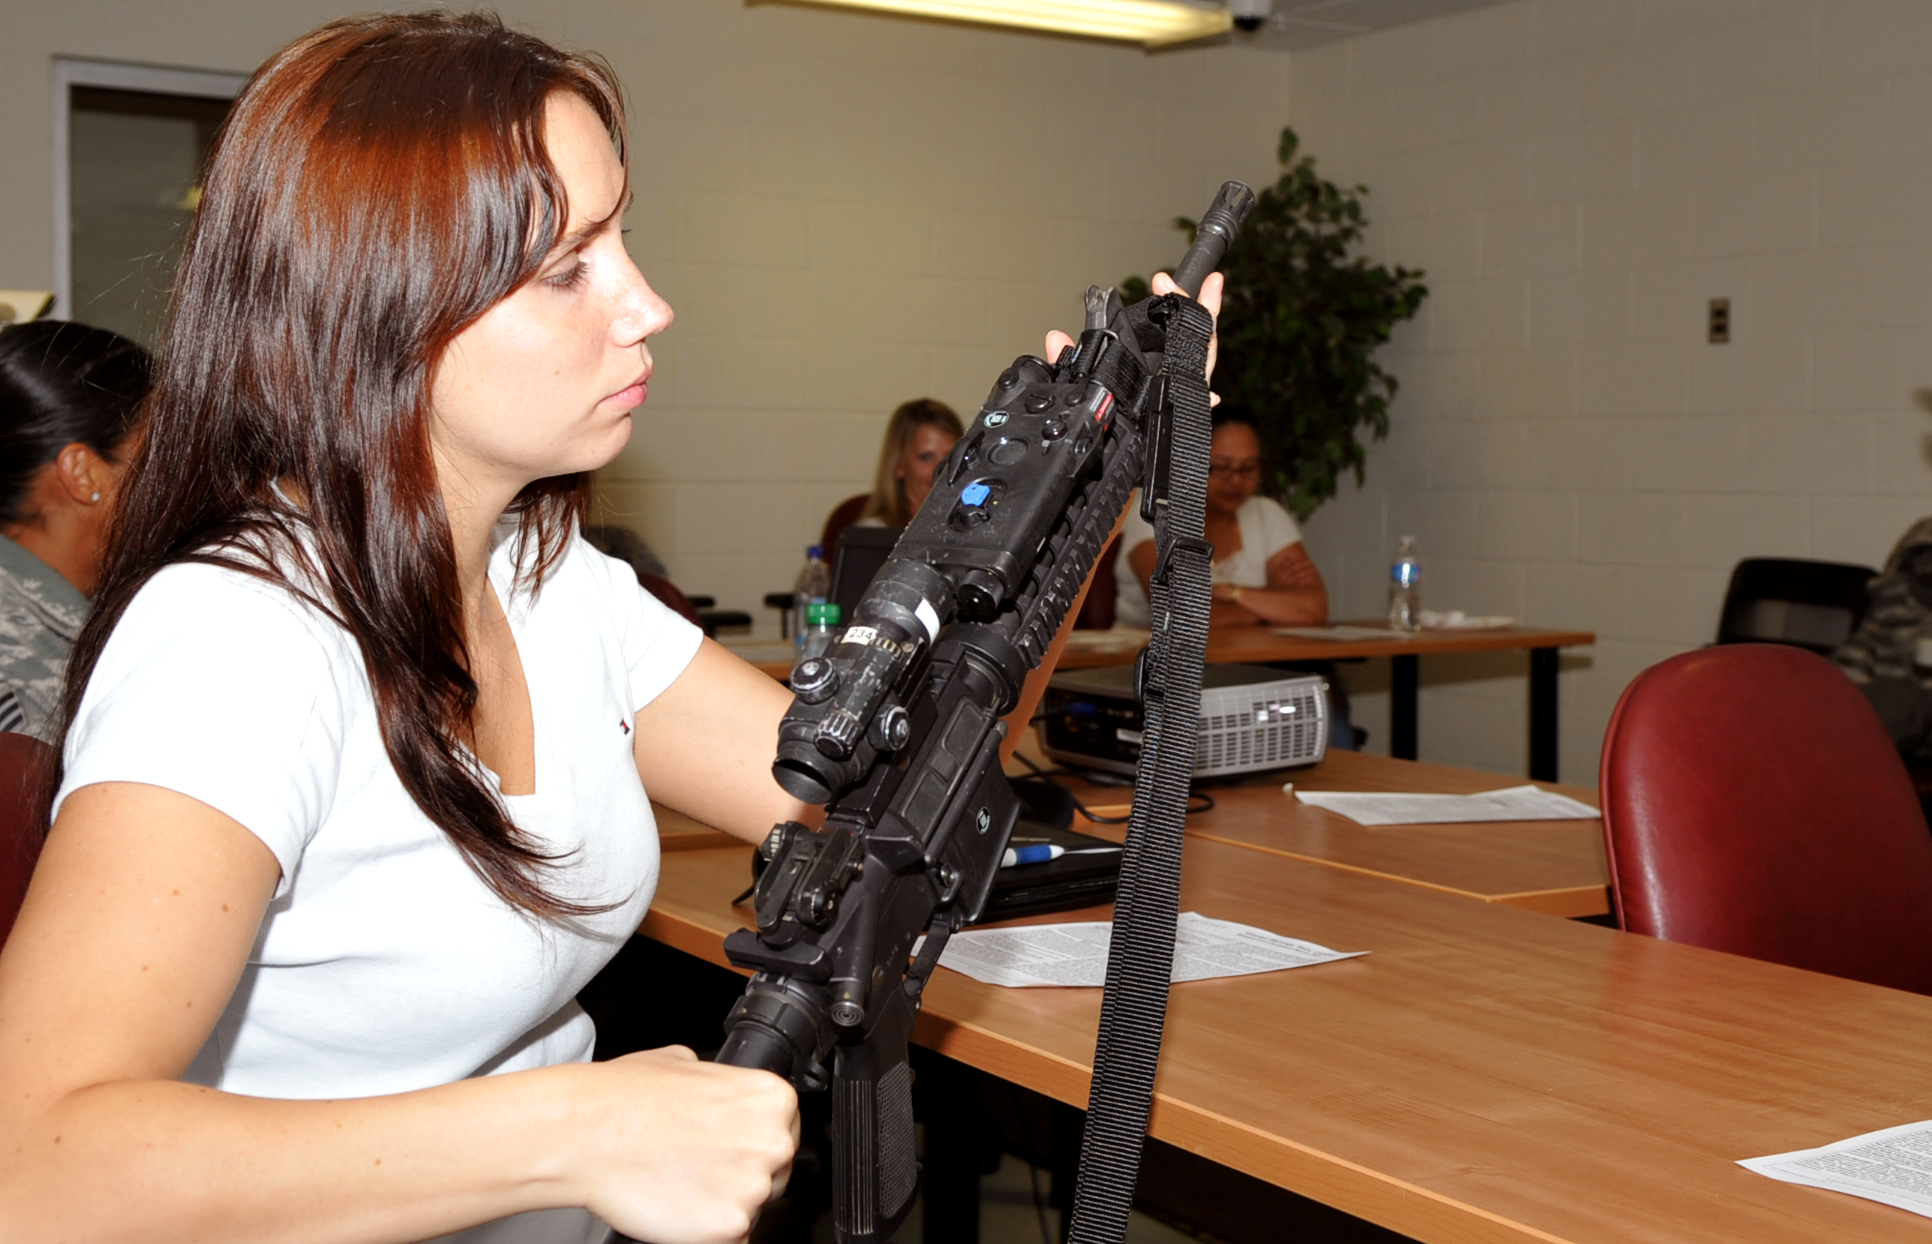 Citizens' Police Academy provides safety, security forces insight